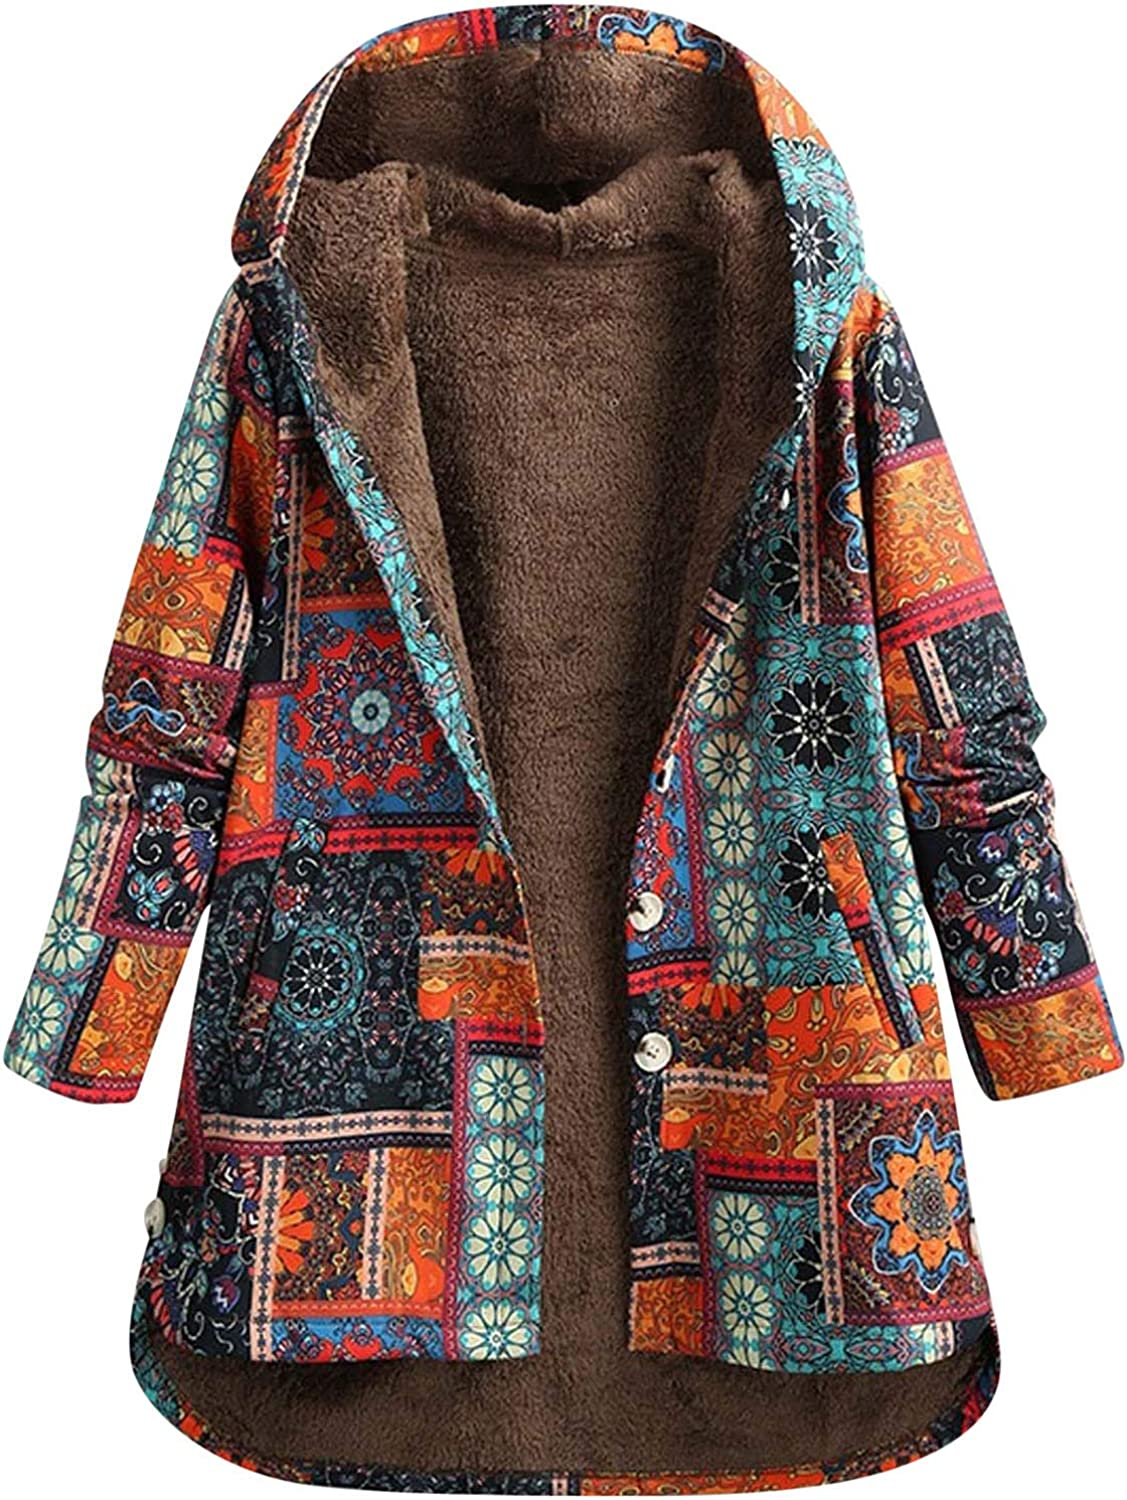 Forwelly Plus Size Jacket for Womens Winter Warm Lined Outwear Vintage Print Oversize Coats with Hooded Pockets